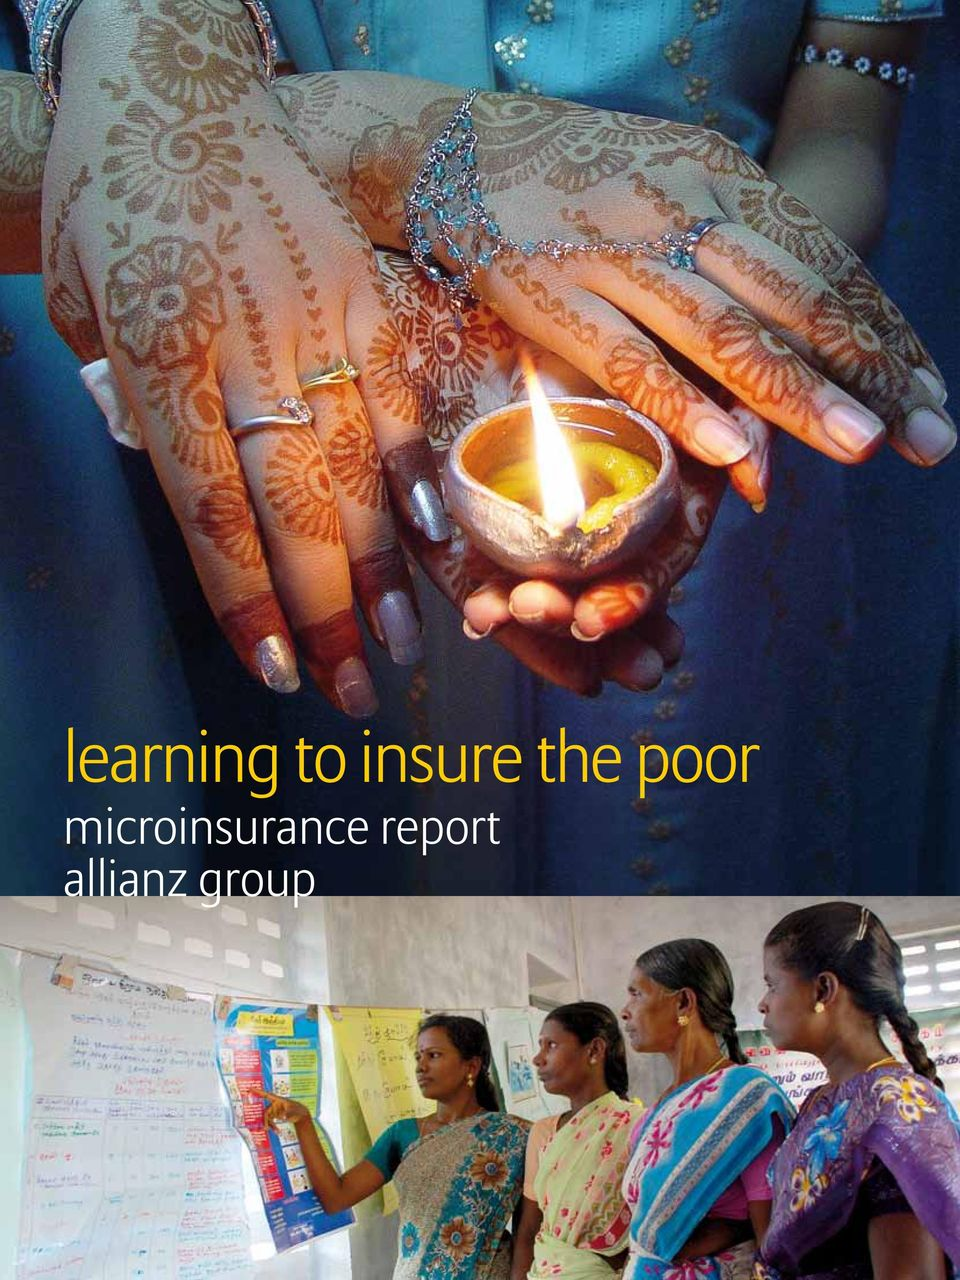 microinsurance report